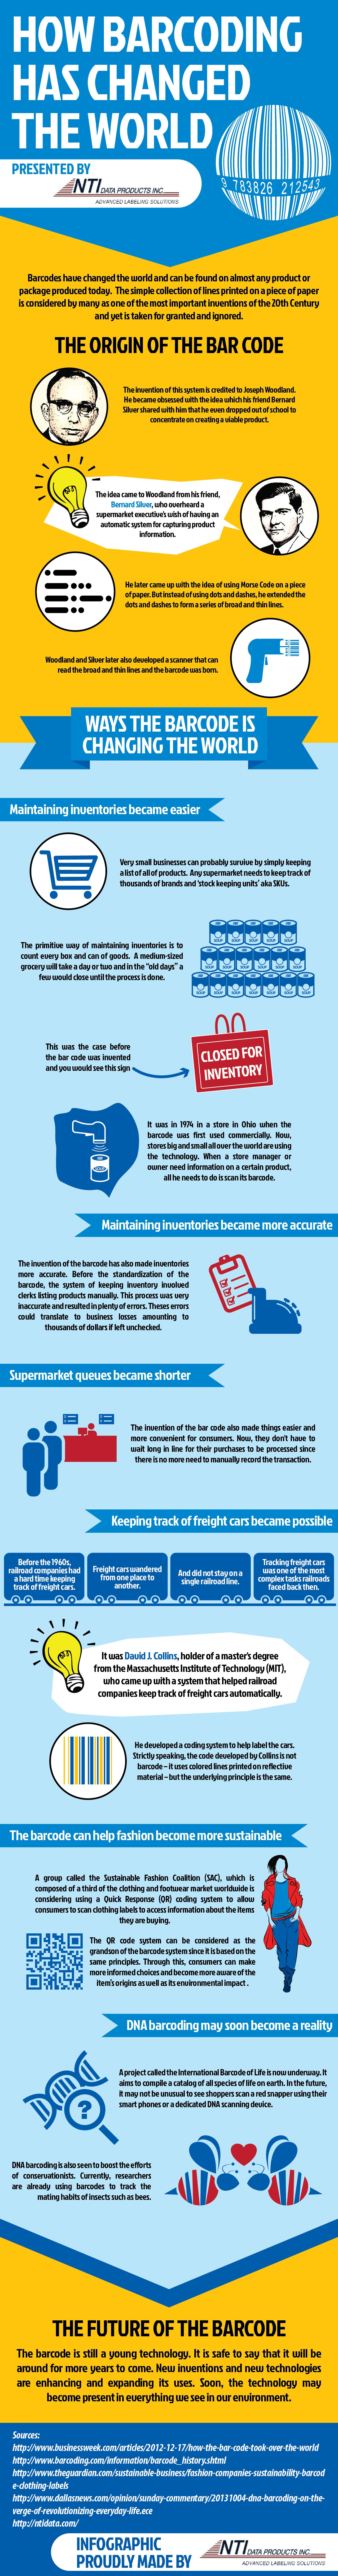 How Barcoding Has Changed the World